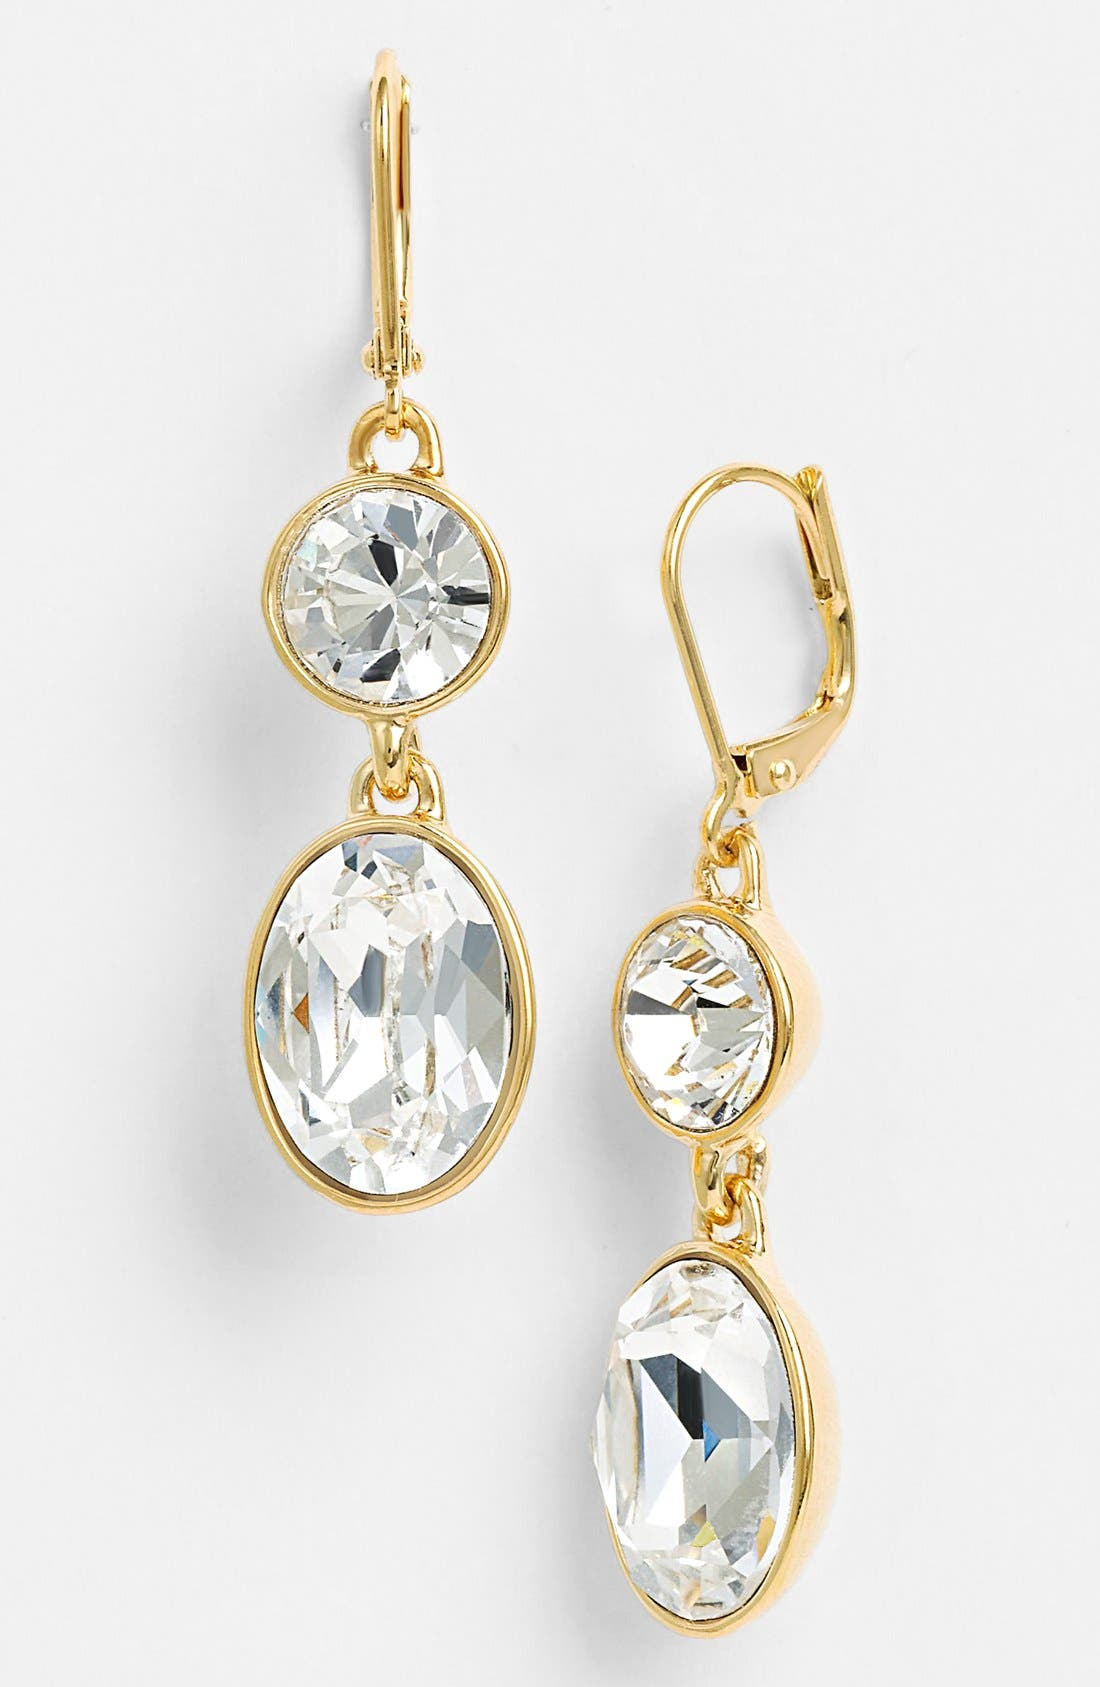 Main Image - Givenchy Drop Earrings (Nordstrom Exclusive)